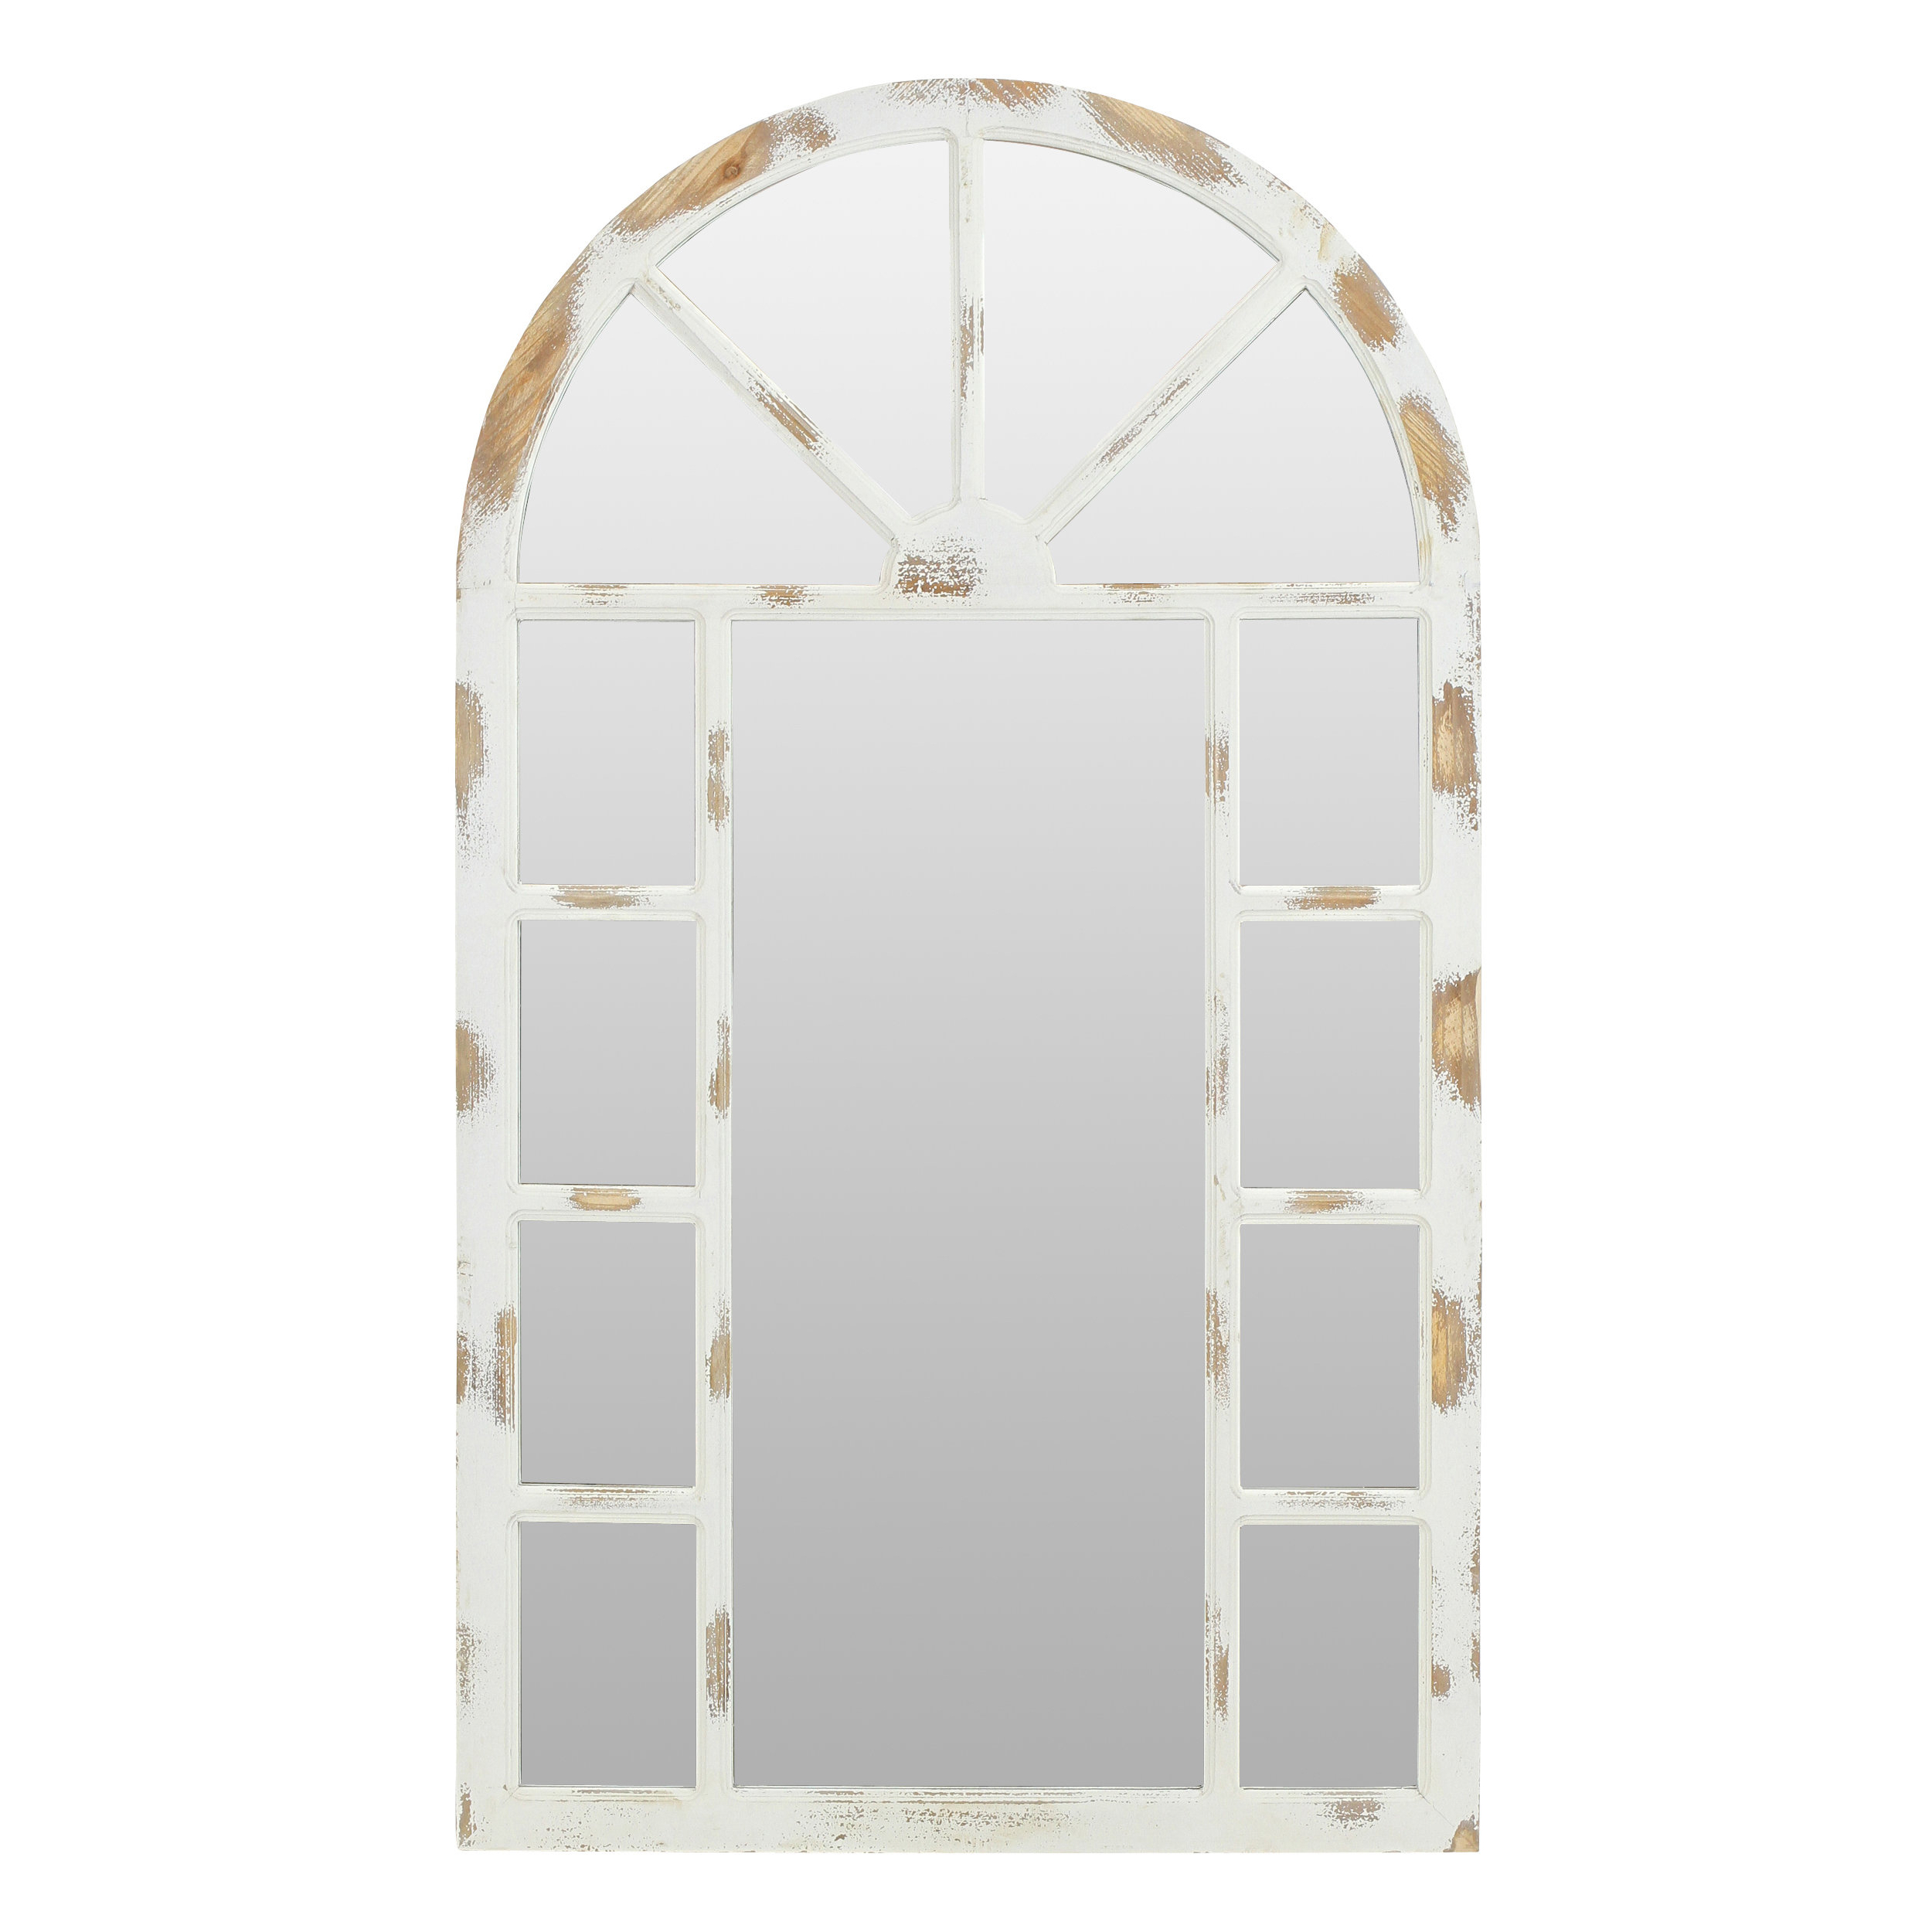 Kirwan Farmhouse Arch Wall Mirror With Preferred Arch Wall Mirrors (View 13 of 20)